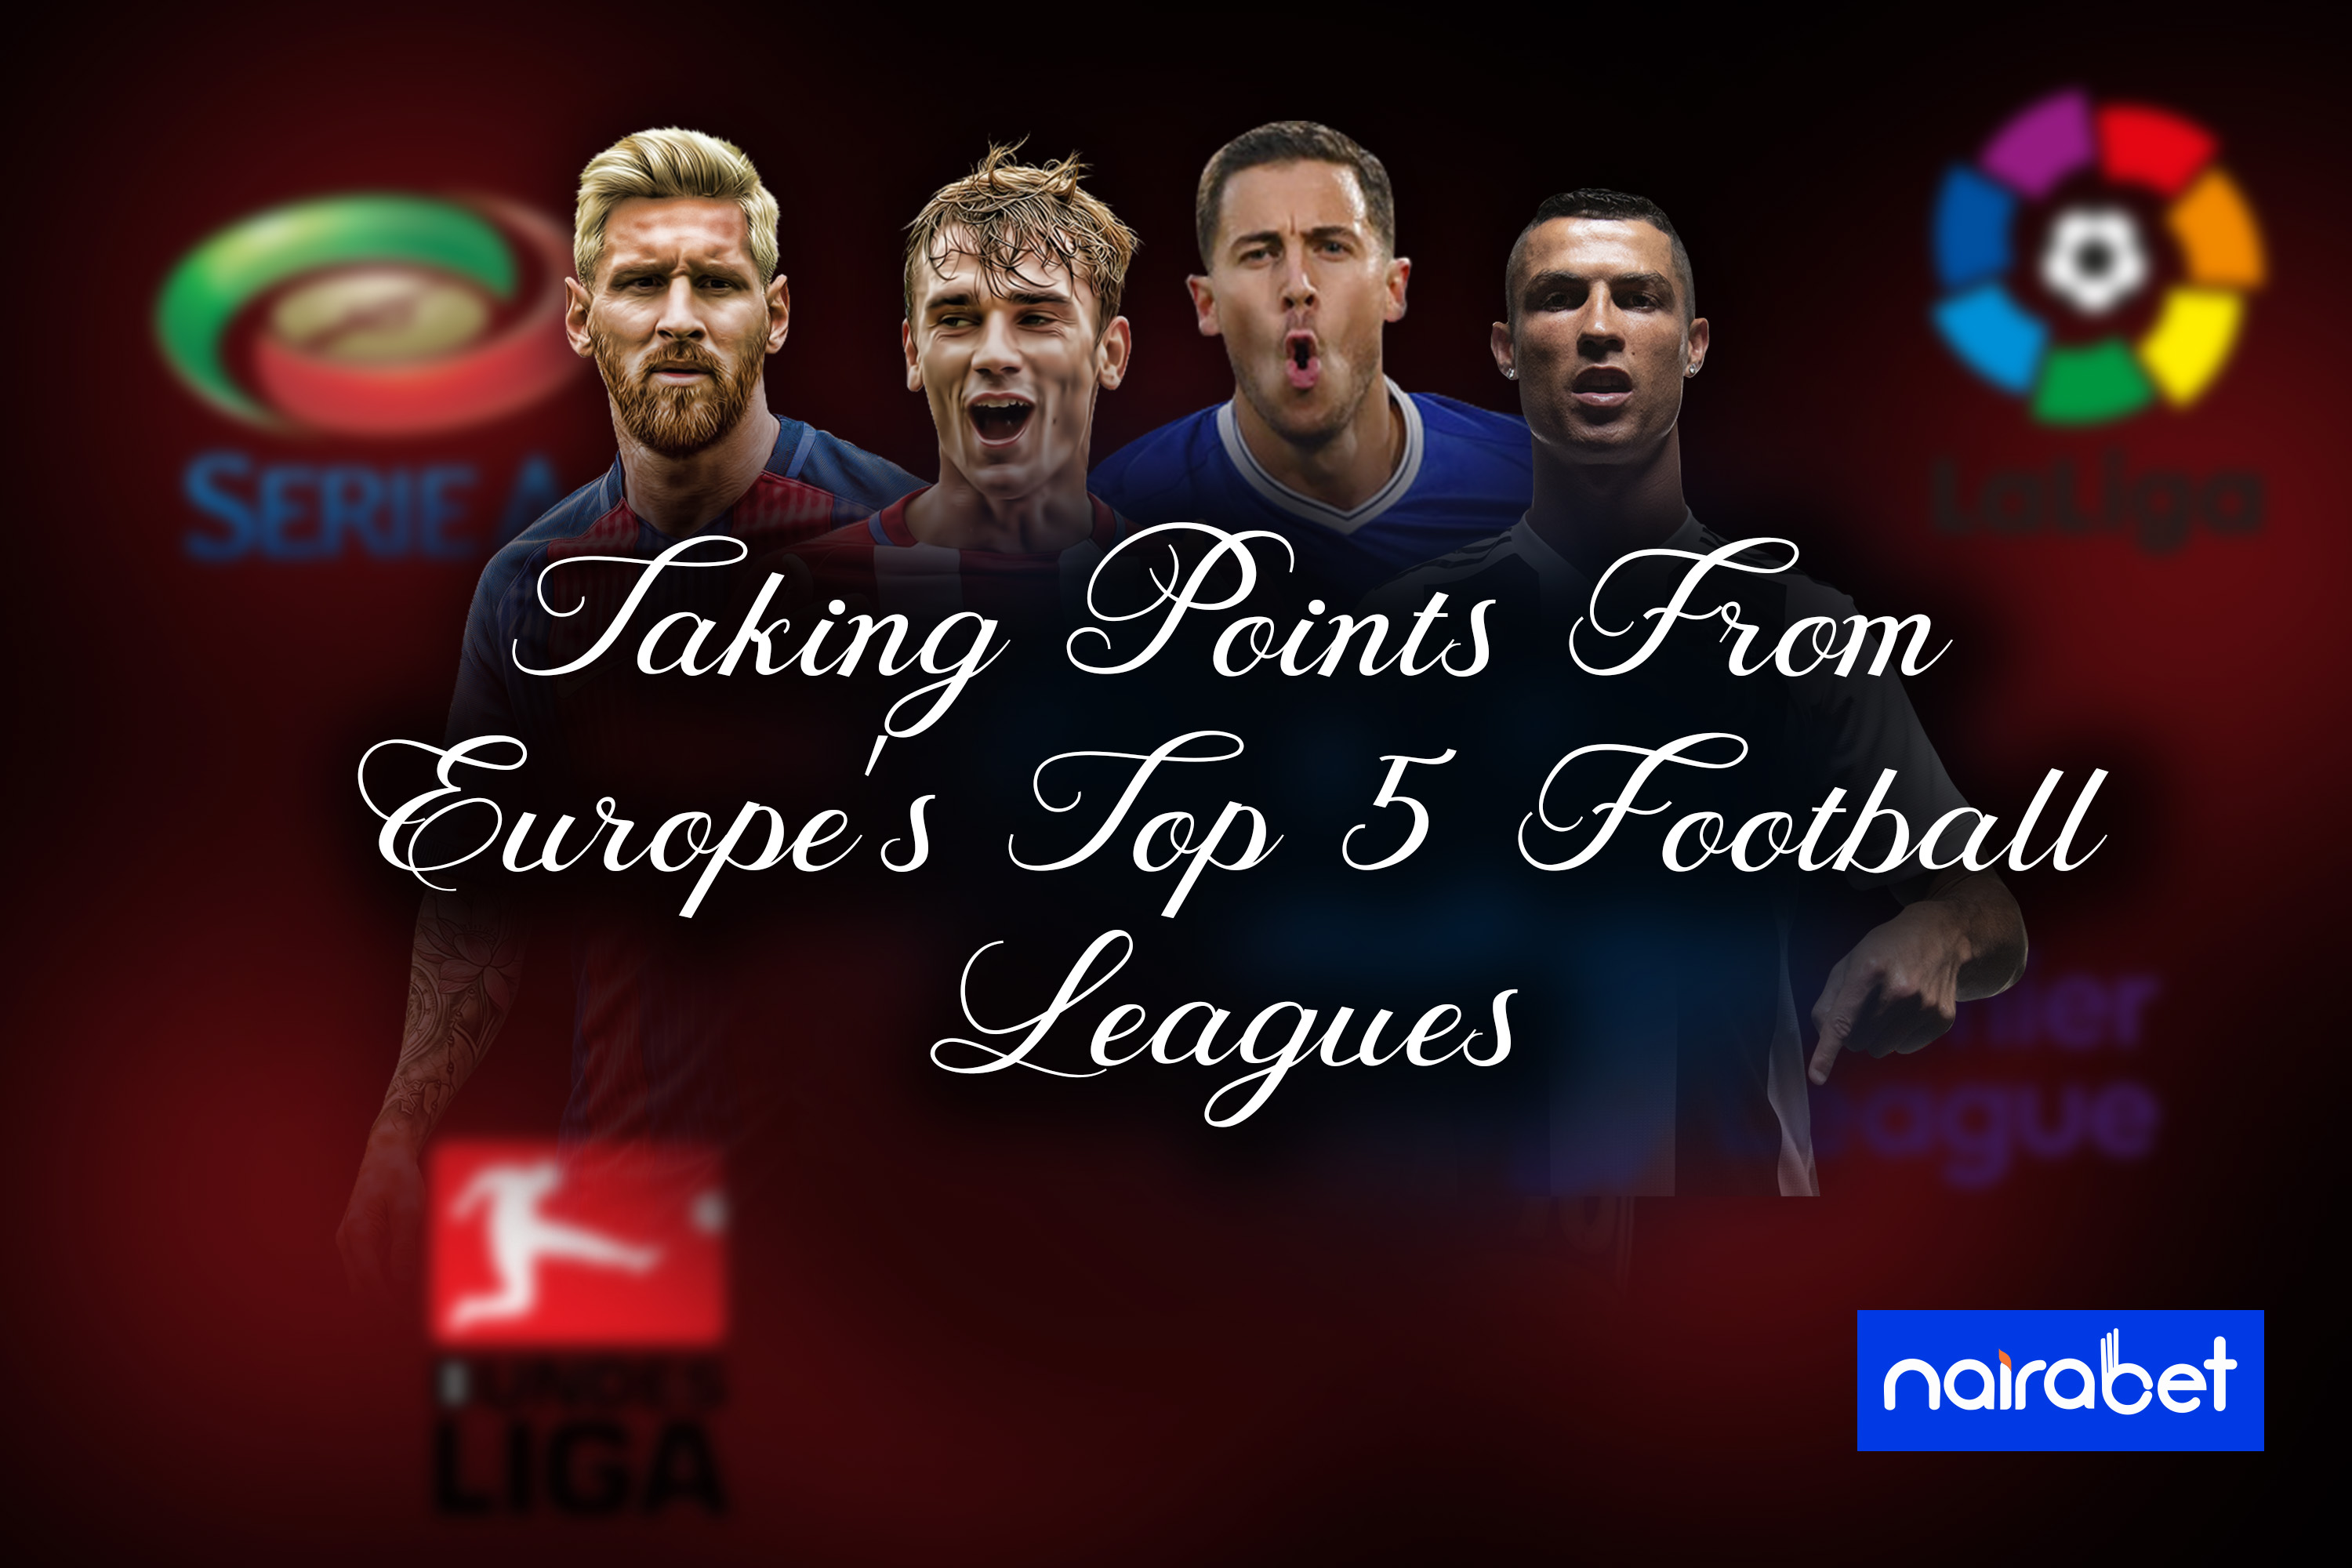 Top 5 football leagues